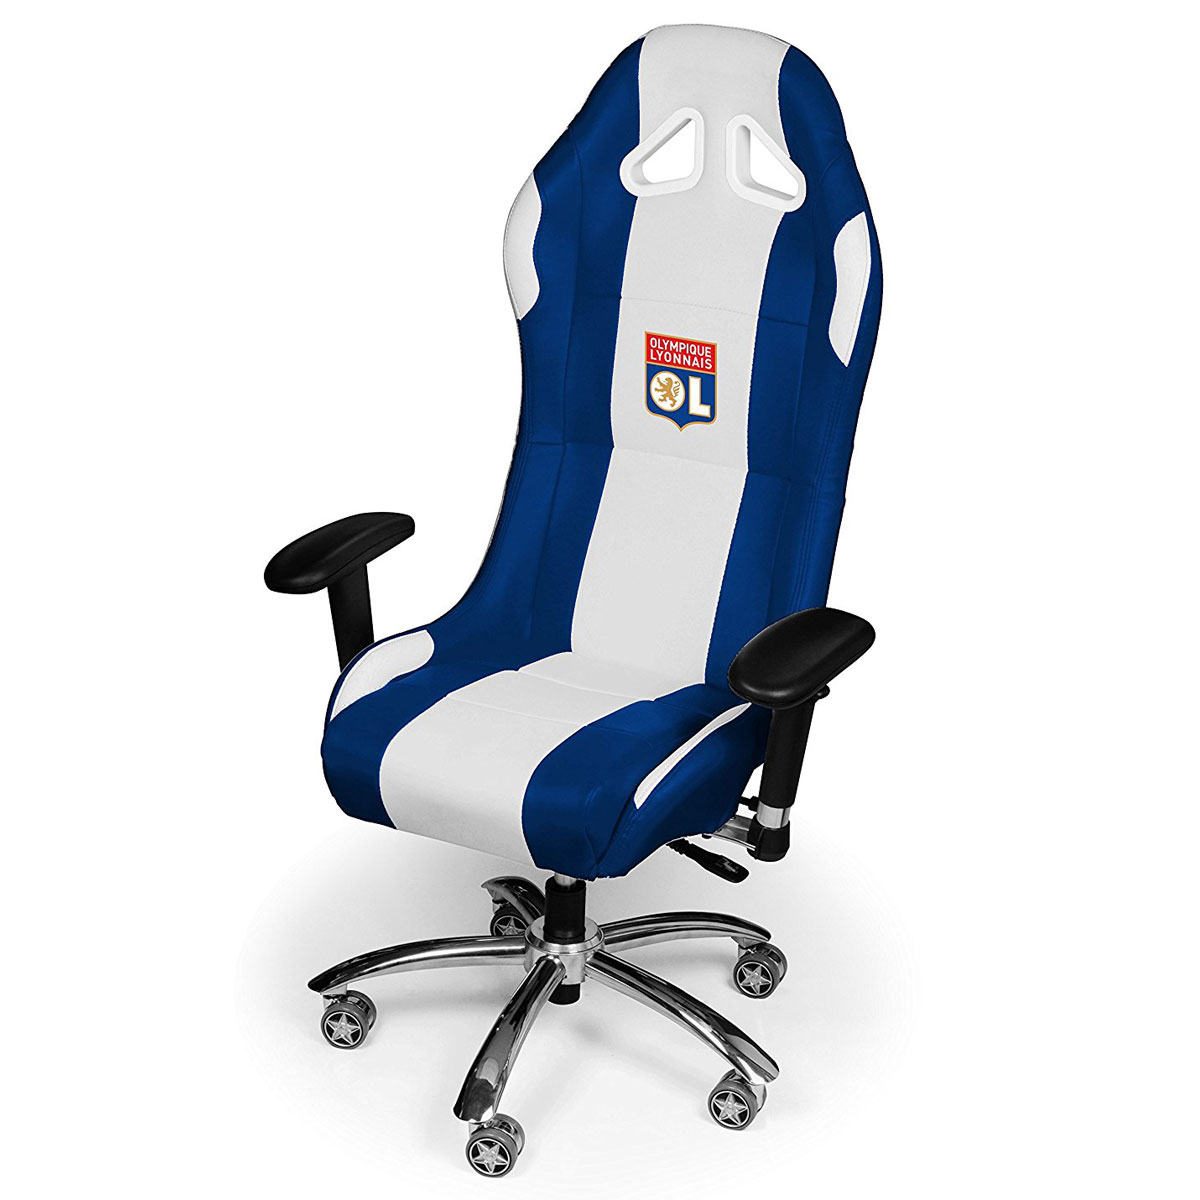 Best Leather Recliner Gaming Chairs For Kids Adults also Mad Catz Ships The R A T Prox Gaming Mouse as well PB00223581 besides PB00198438 as well volairsim. on pro gamer chair